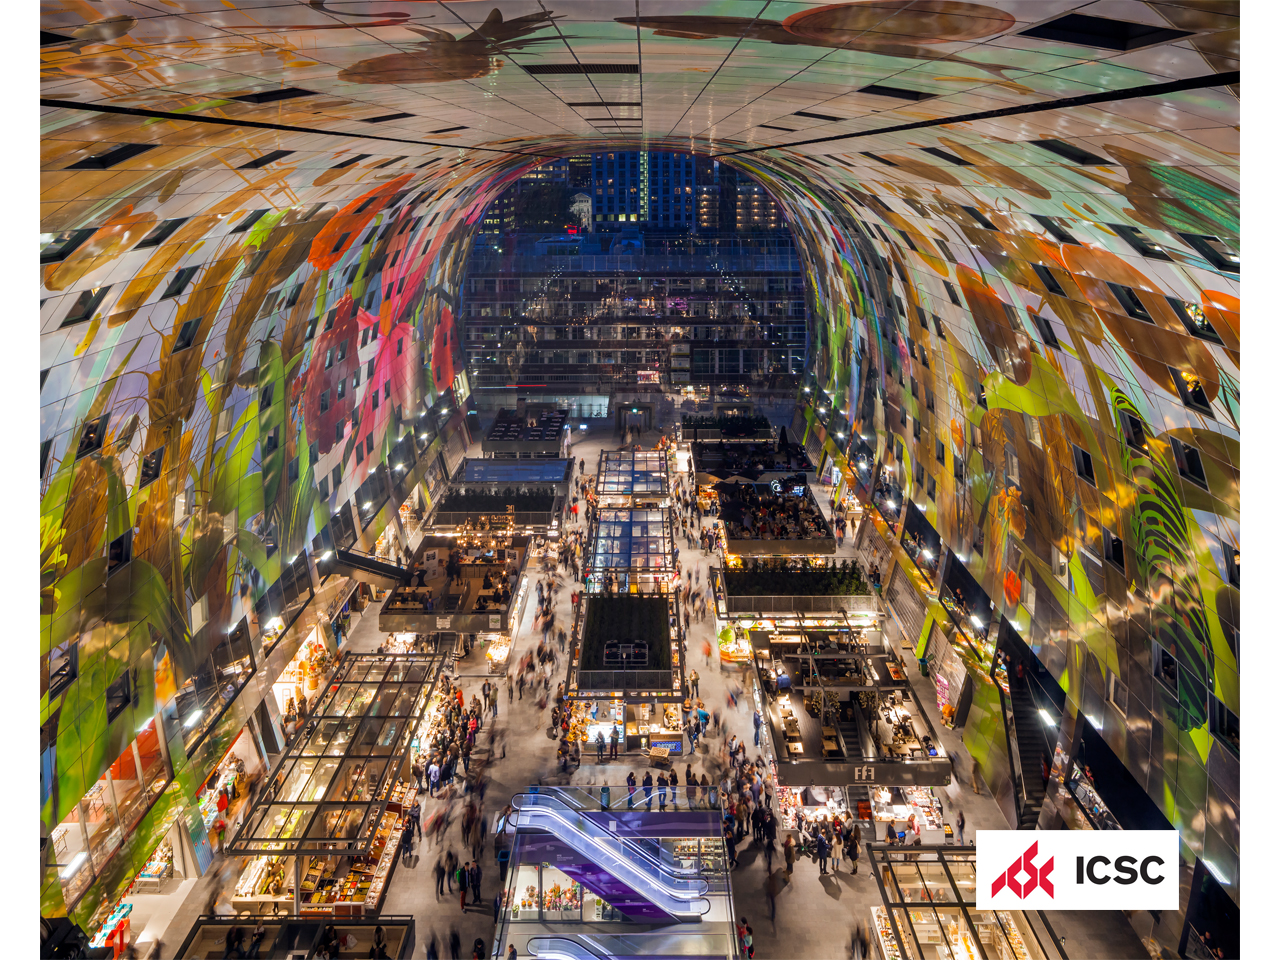 Markthal wins ICSC award for best shopping centre in the world